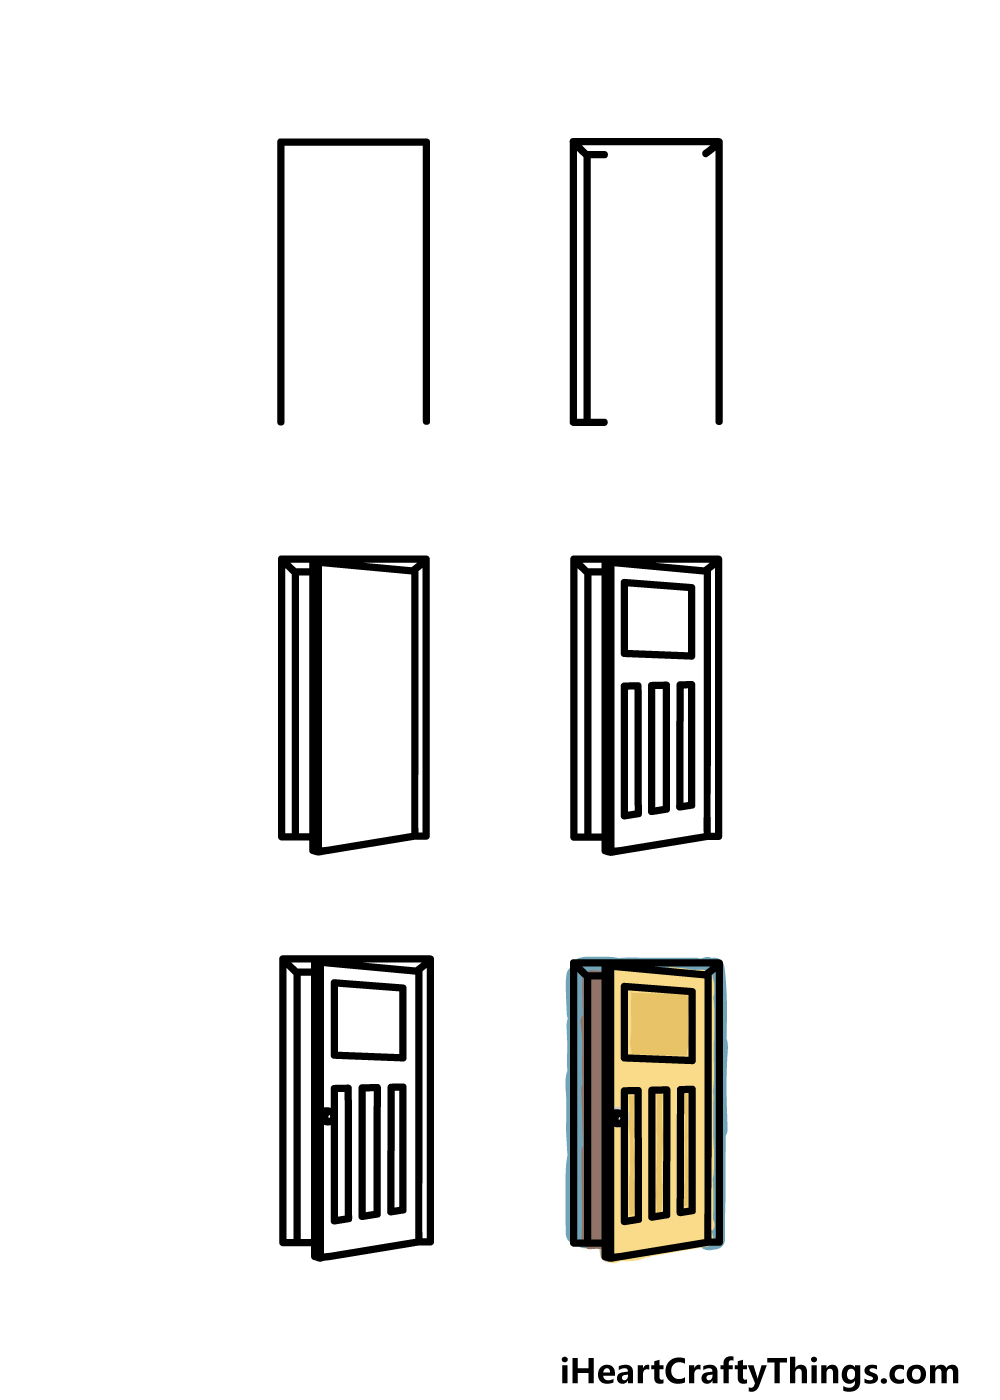 how to draw a door in 6 steps